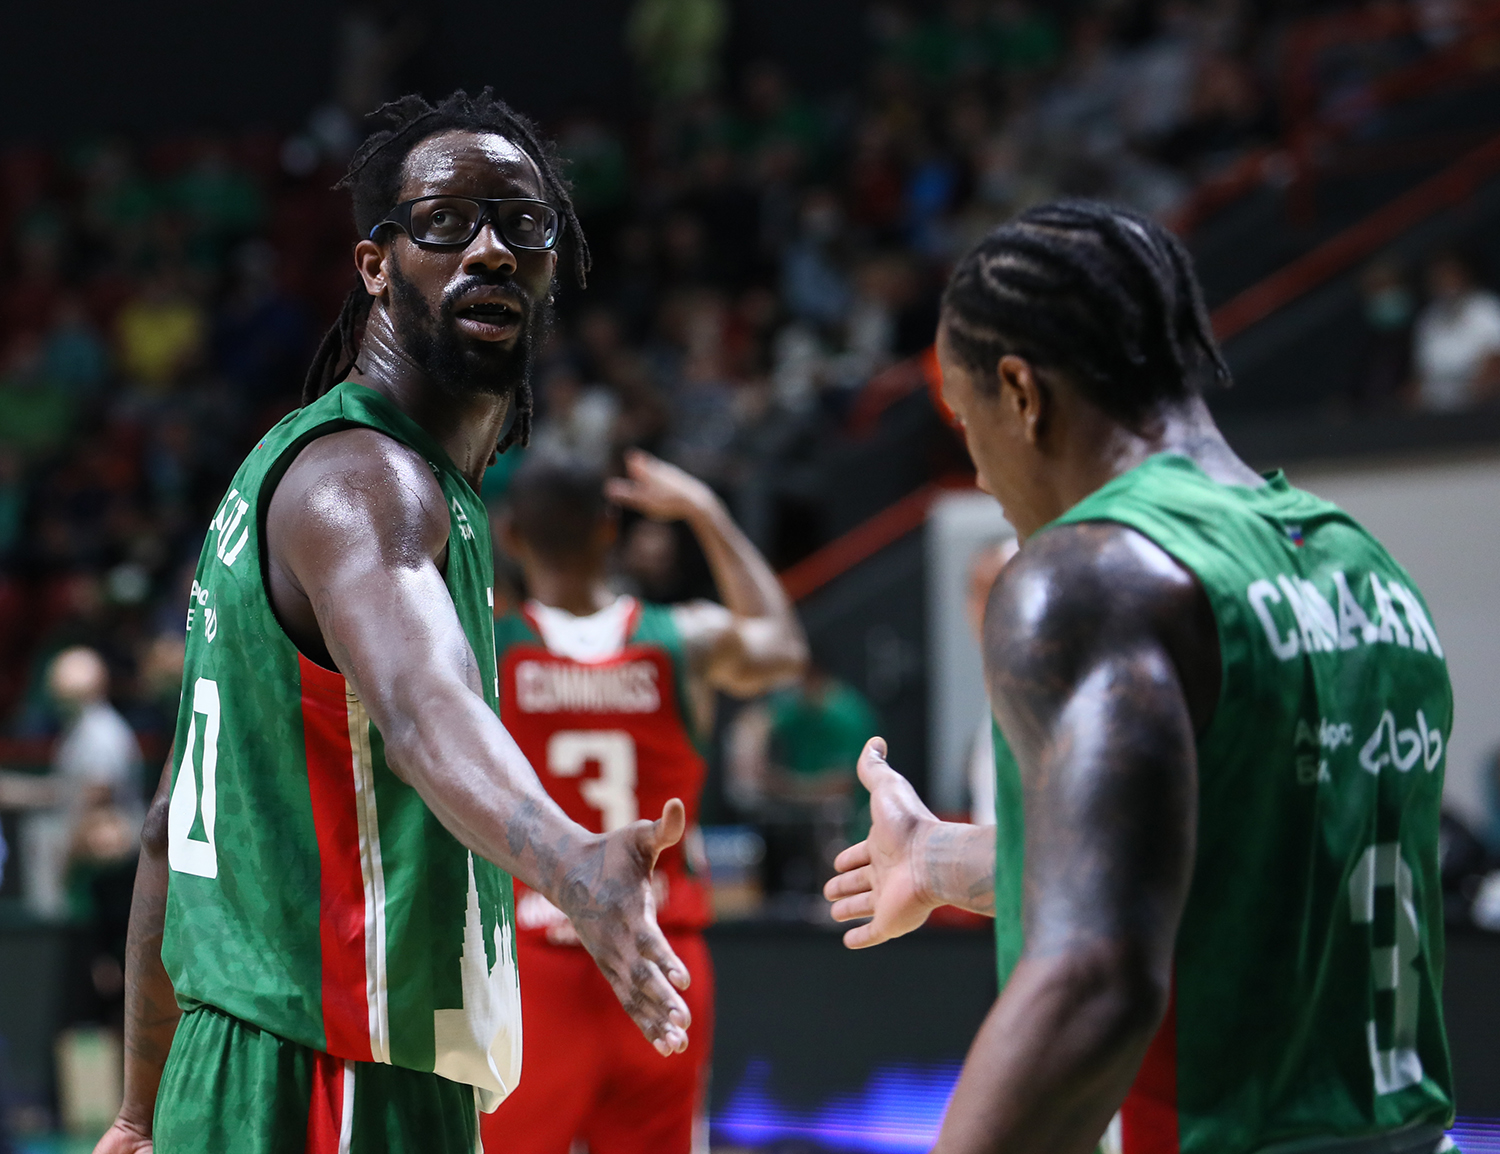 UNICS are the first team to make finals!